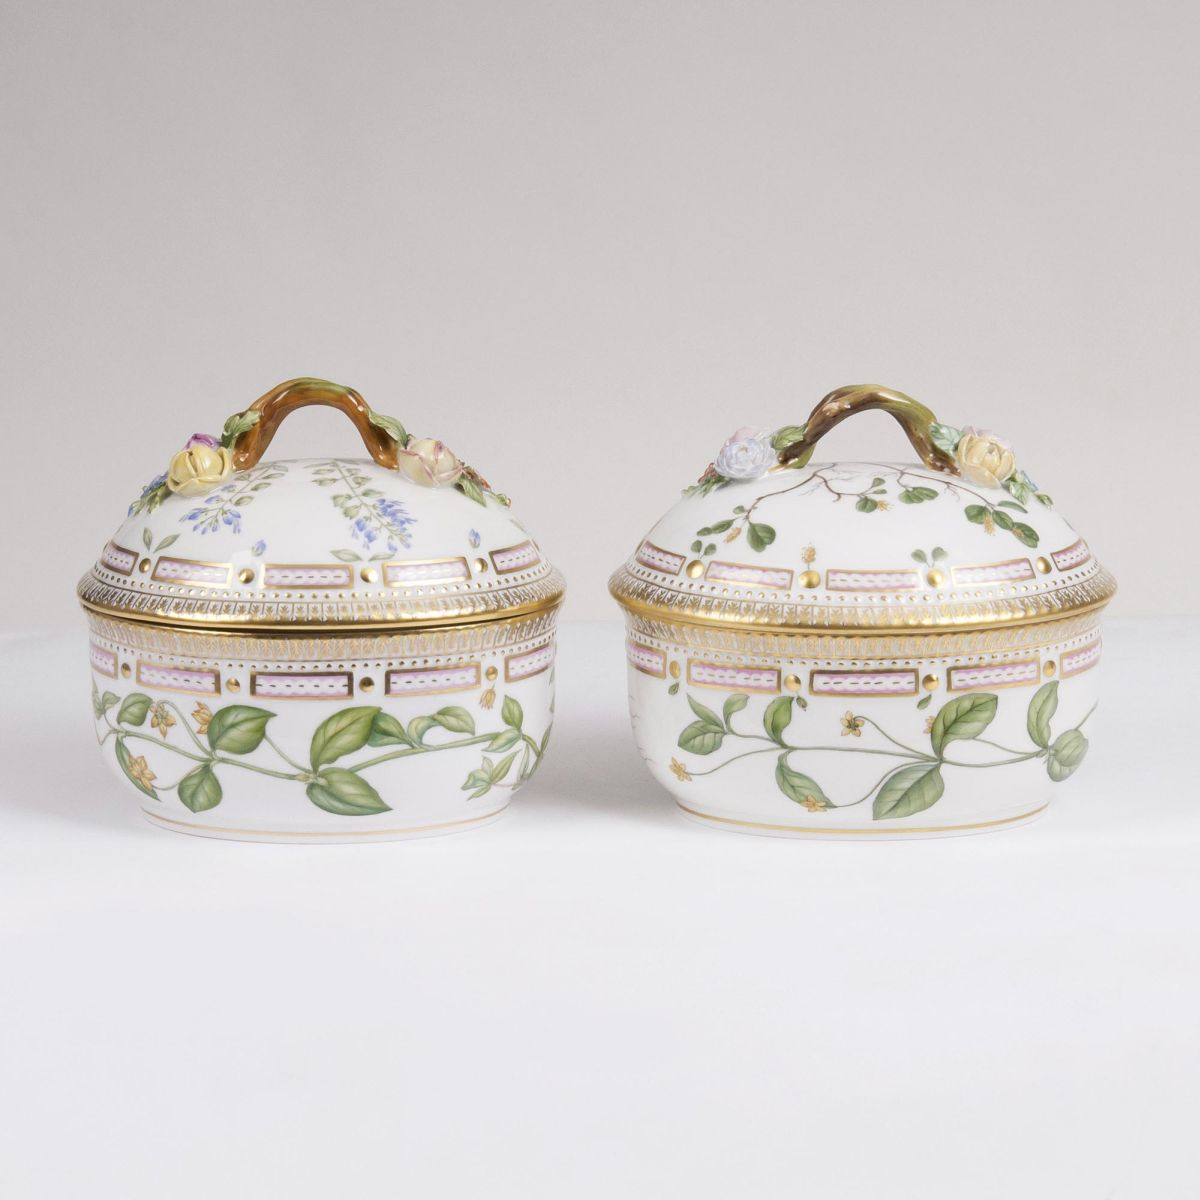 A Pair of Flora Danica Lidded Boxes of Chocolate